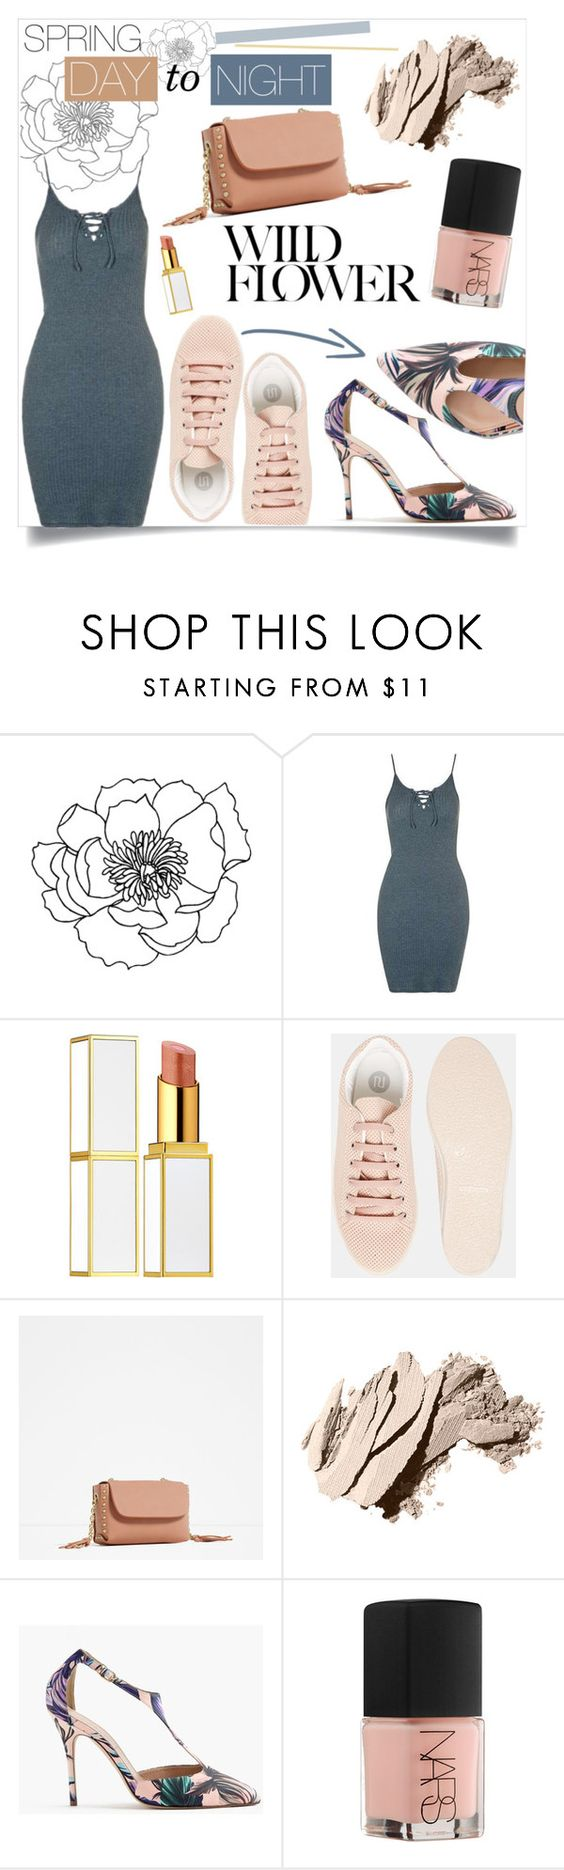 """""""spring day to night"""" by azul-blue ❤ liked on Polyvore featuring Tom Ford, River Island, Zara, Bobbi Brown Cosmetics, J.Crew, NARS Cosmetics and daytoevening"""